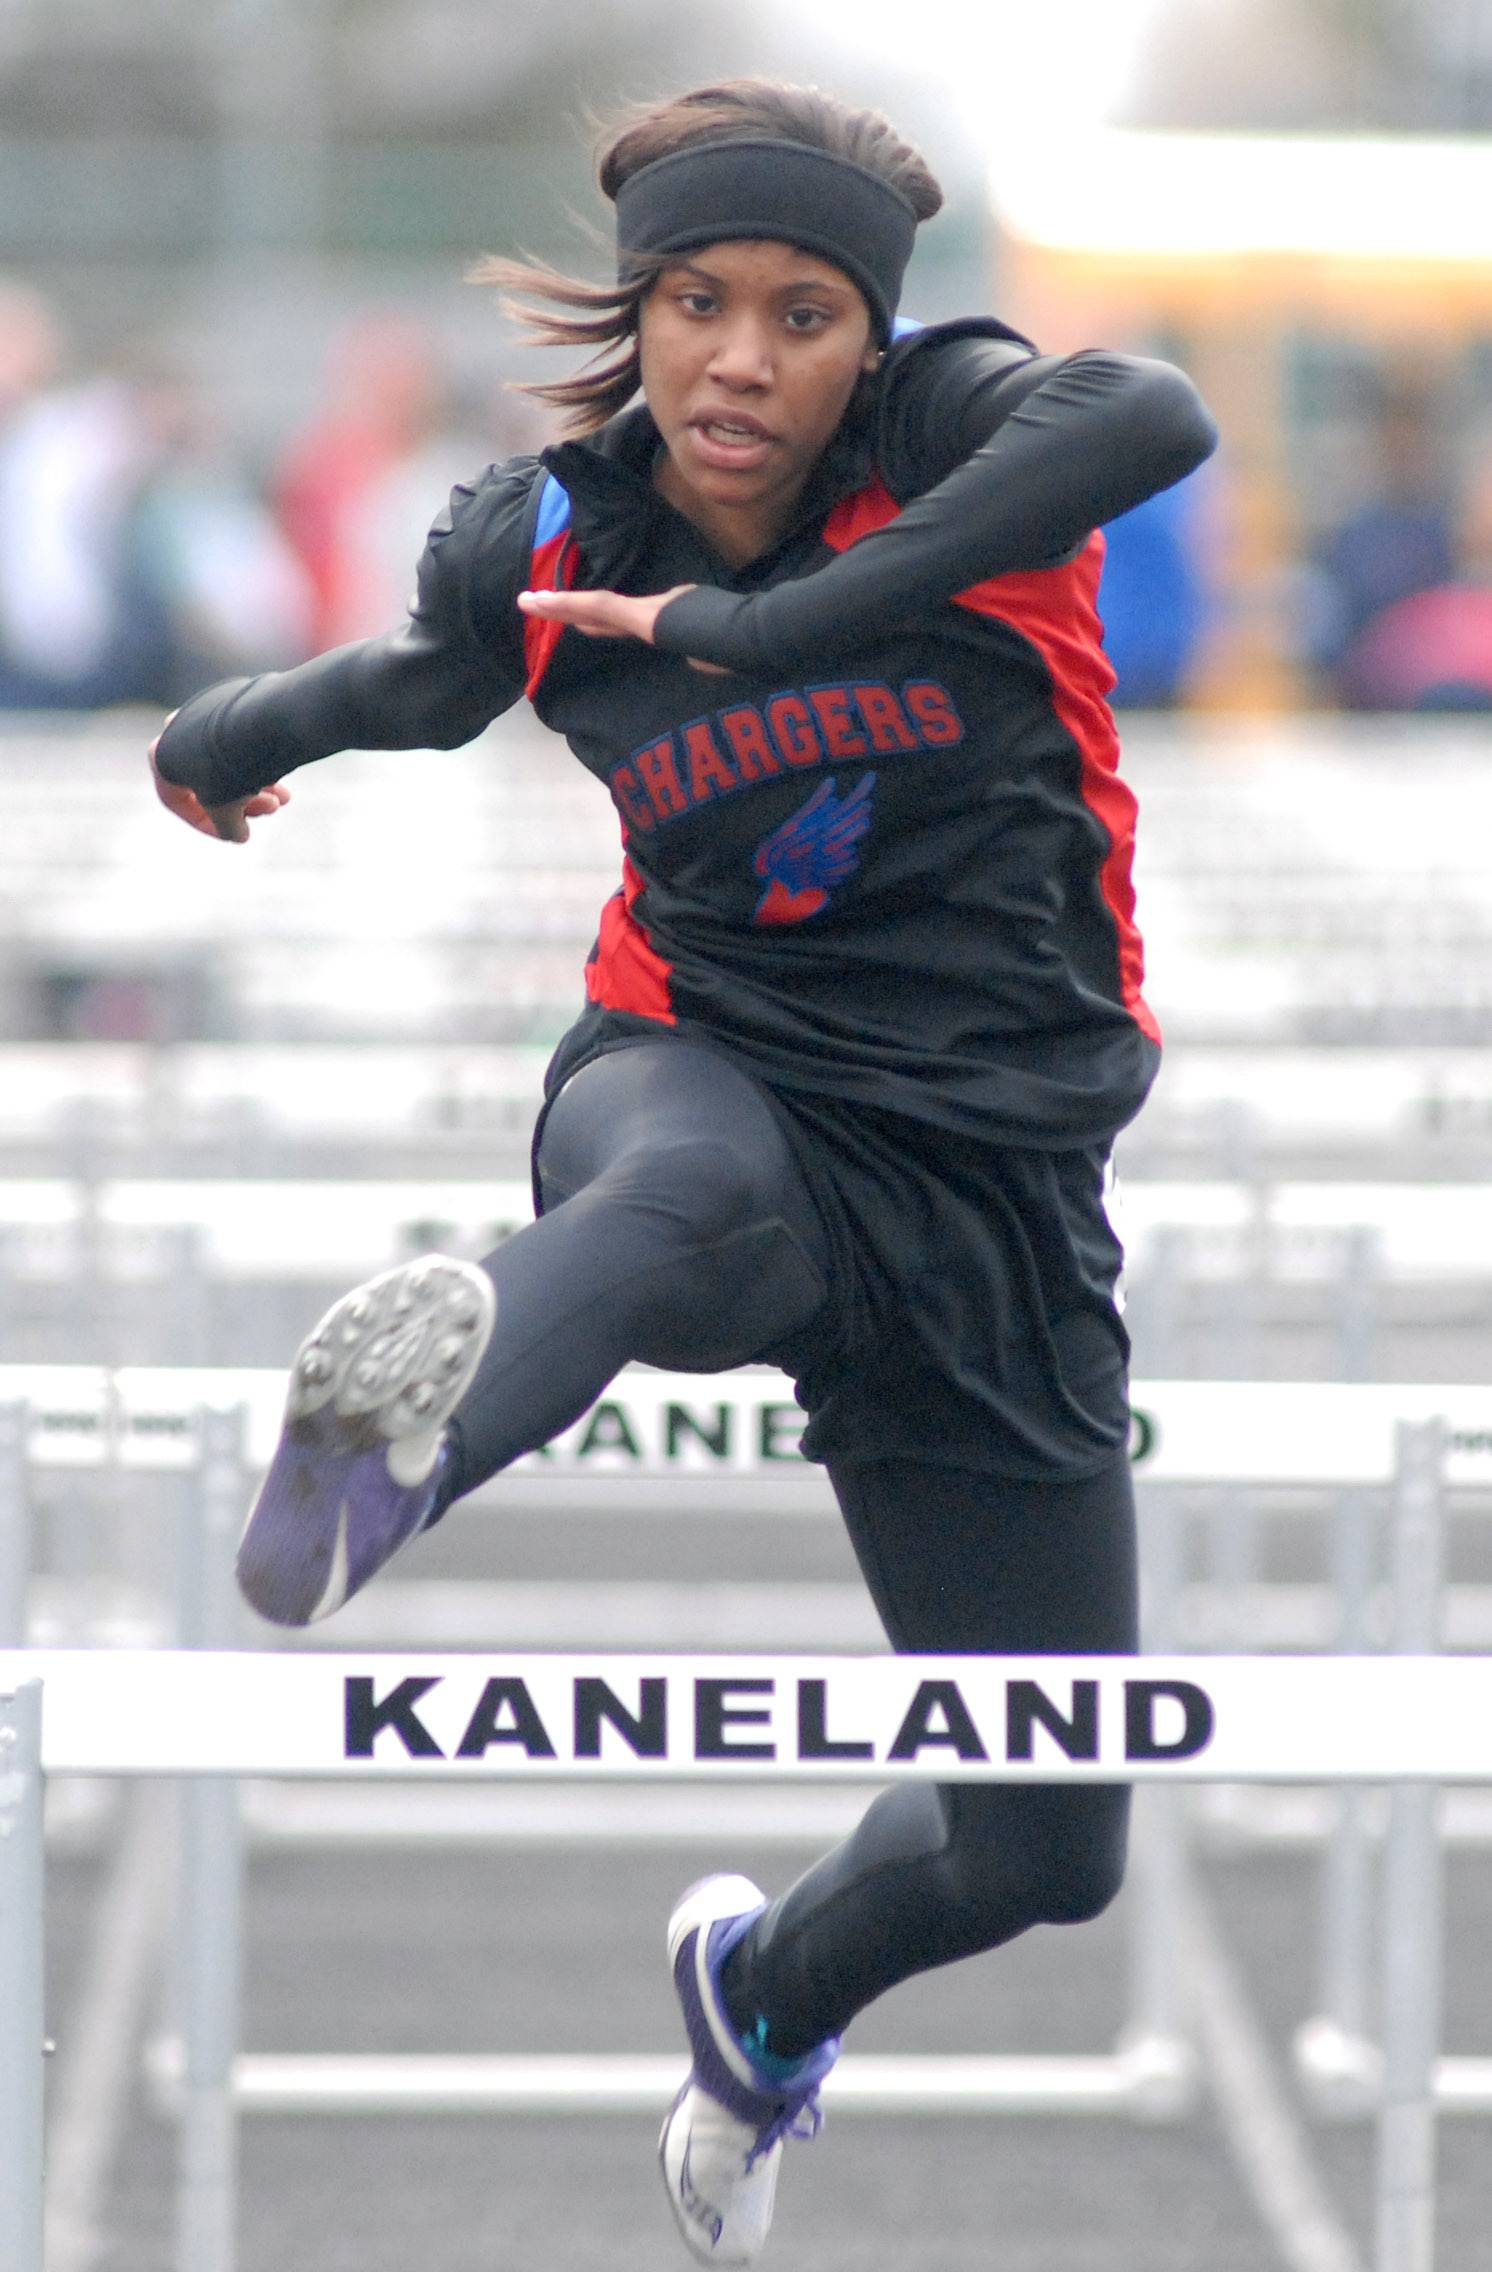 Dundee-Crown's Kayla Lawrence in the 100-yard hurdles prelims at Kaneland High School in Maple Park on Friday, May 2.